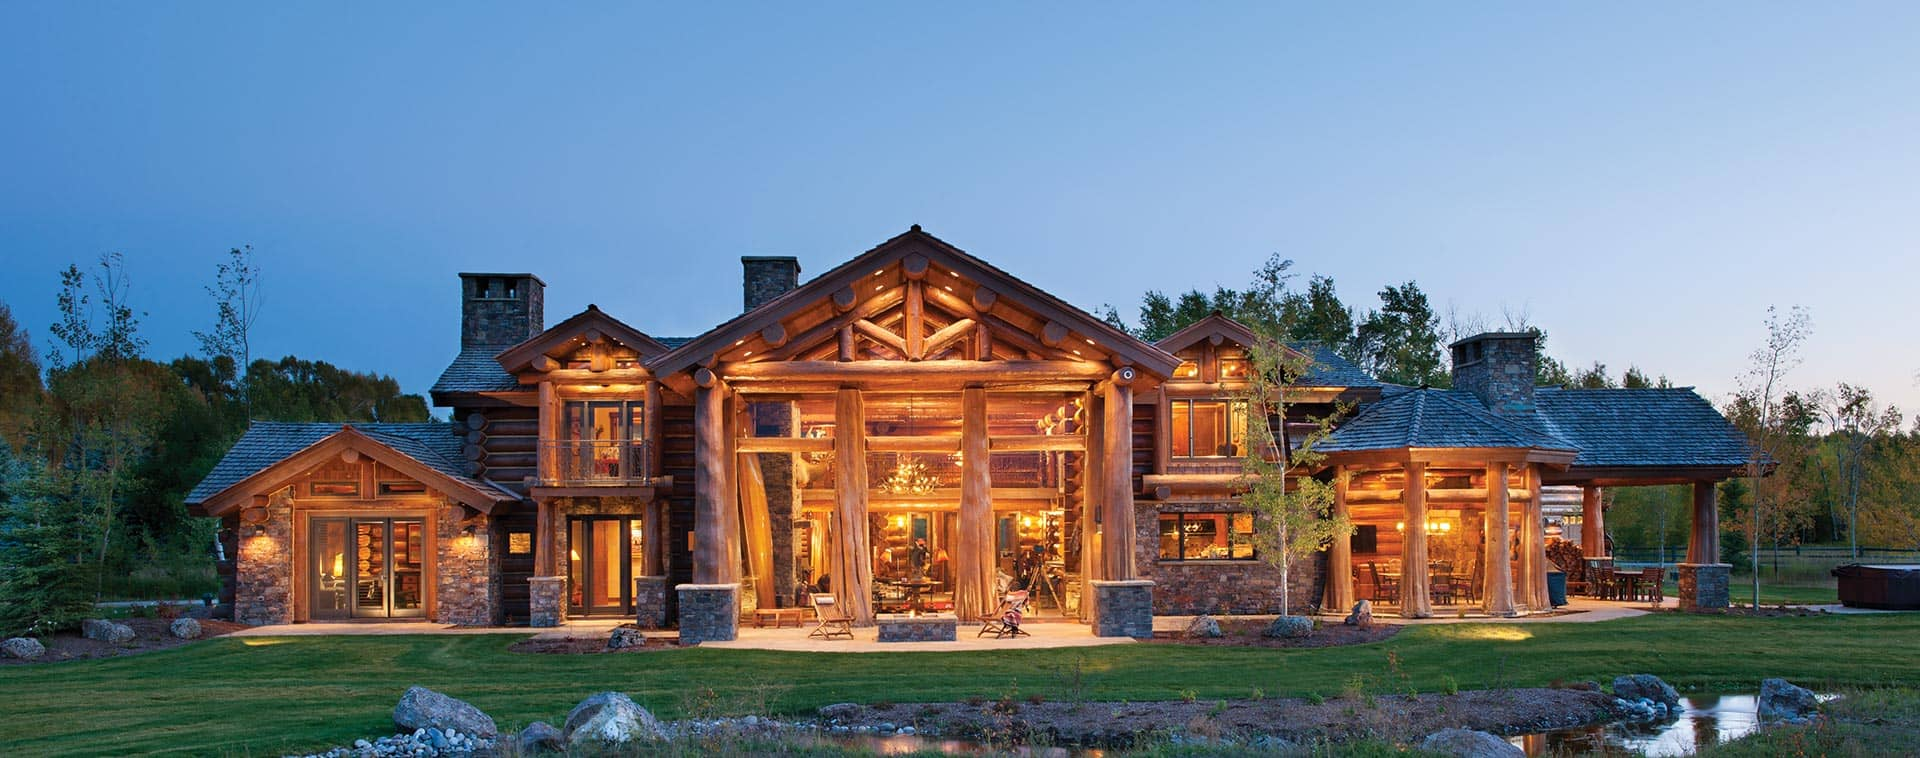 Precisioncraft Log Amp Timber Homes Custom Log Home Builder